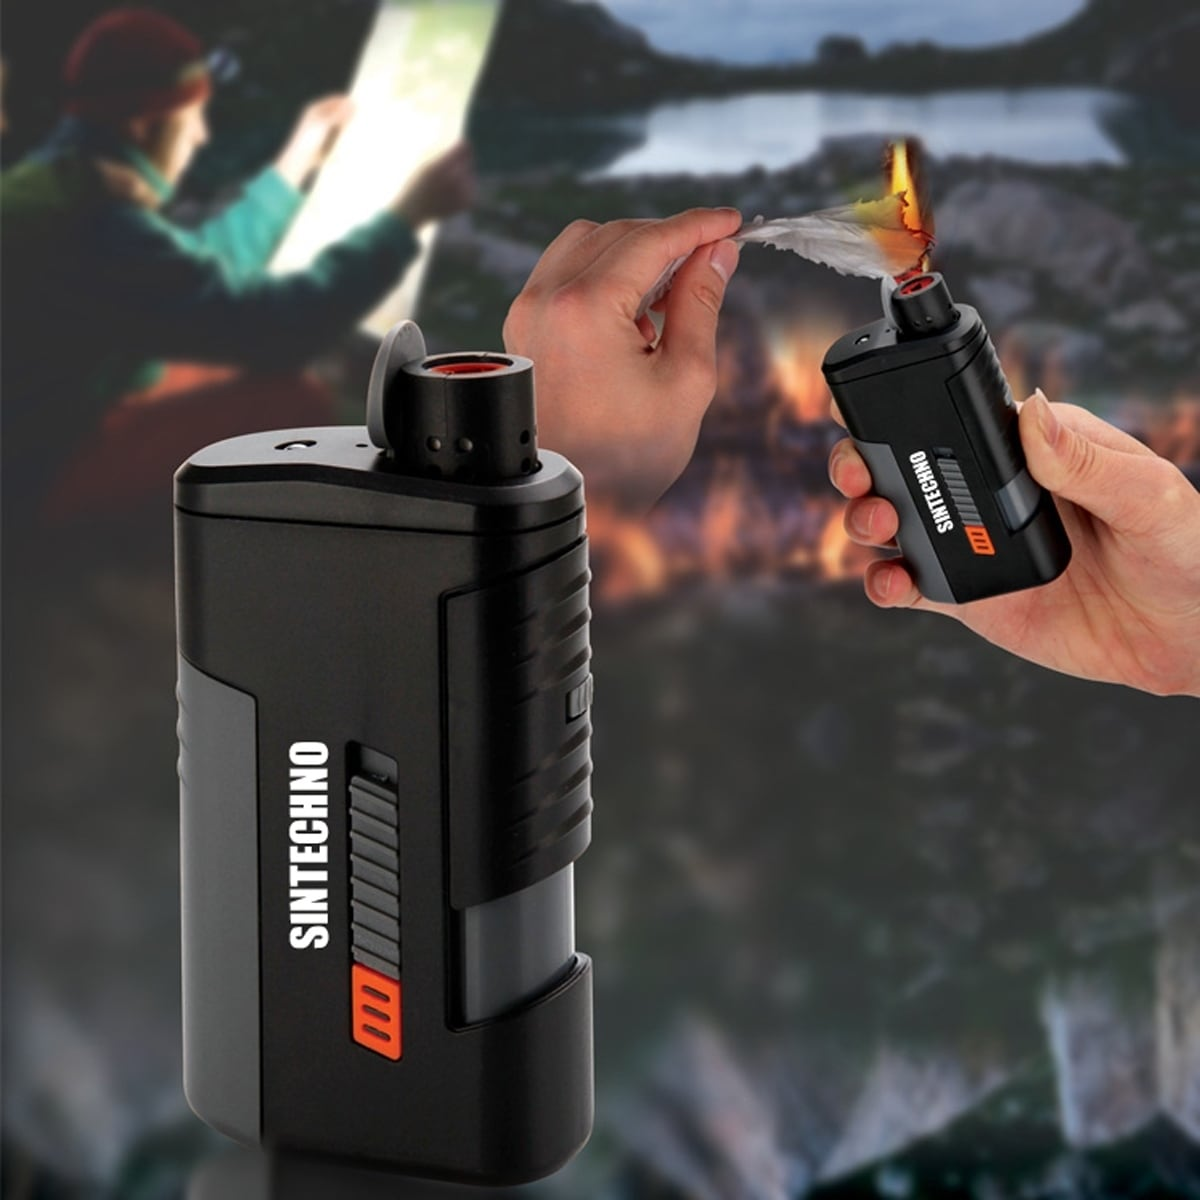 SINTECHNO Windproof Lighter with Power Bank and LED Flashlight